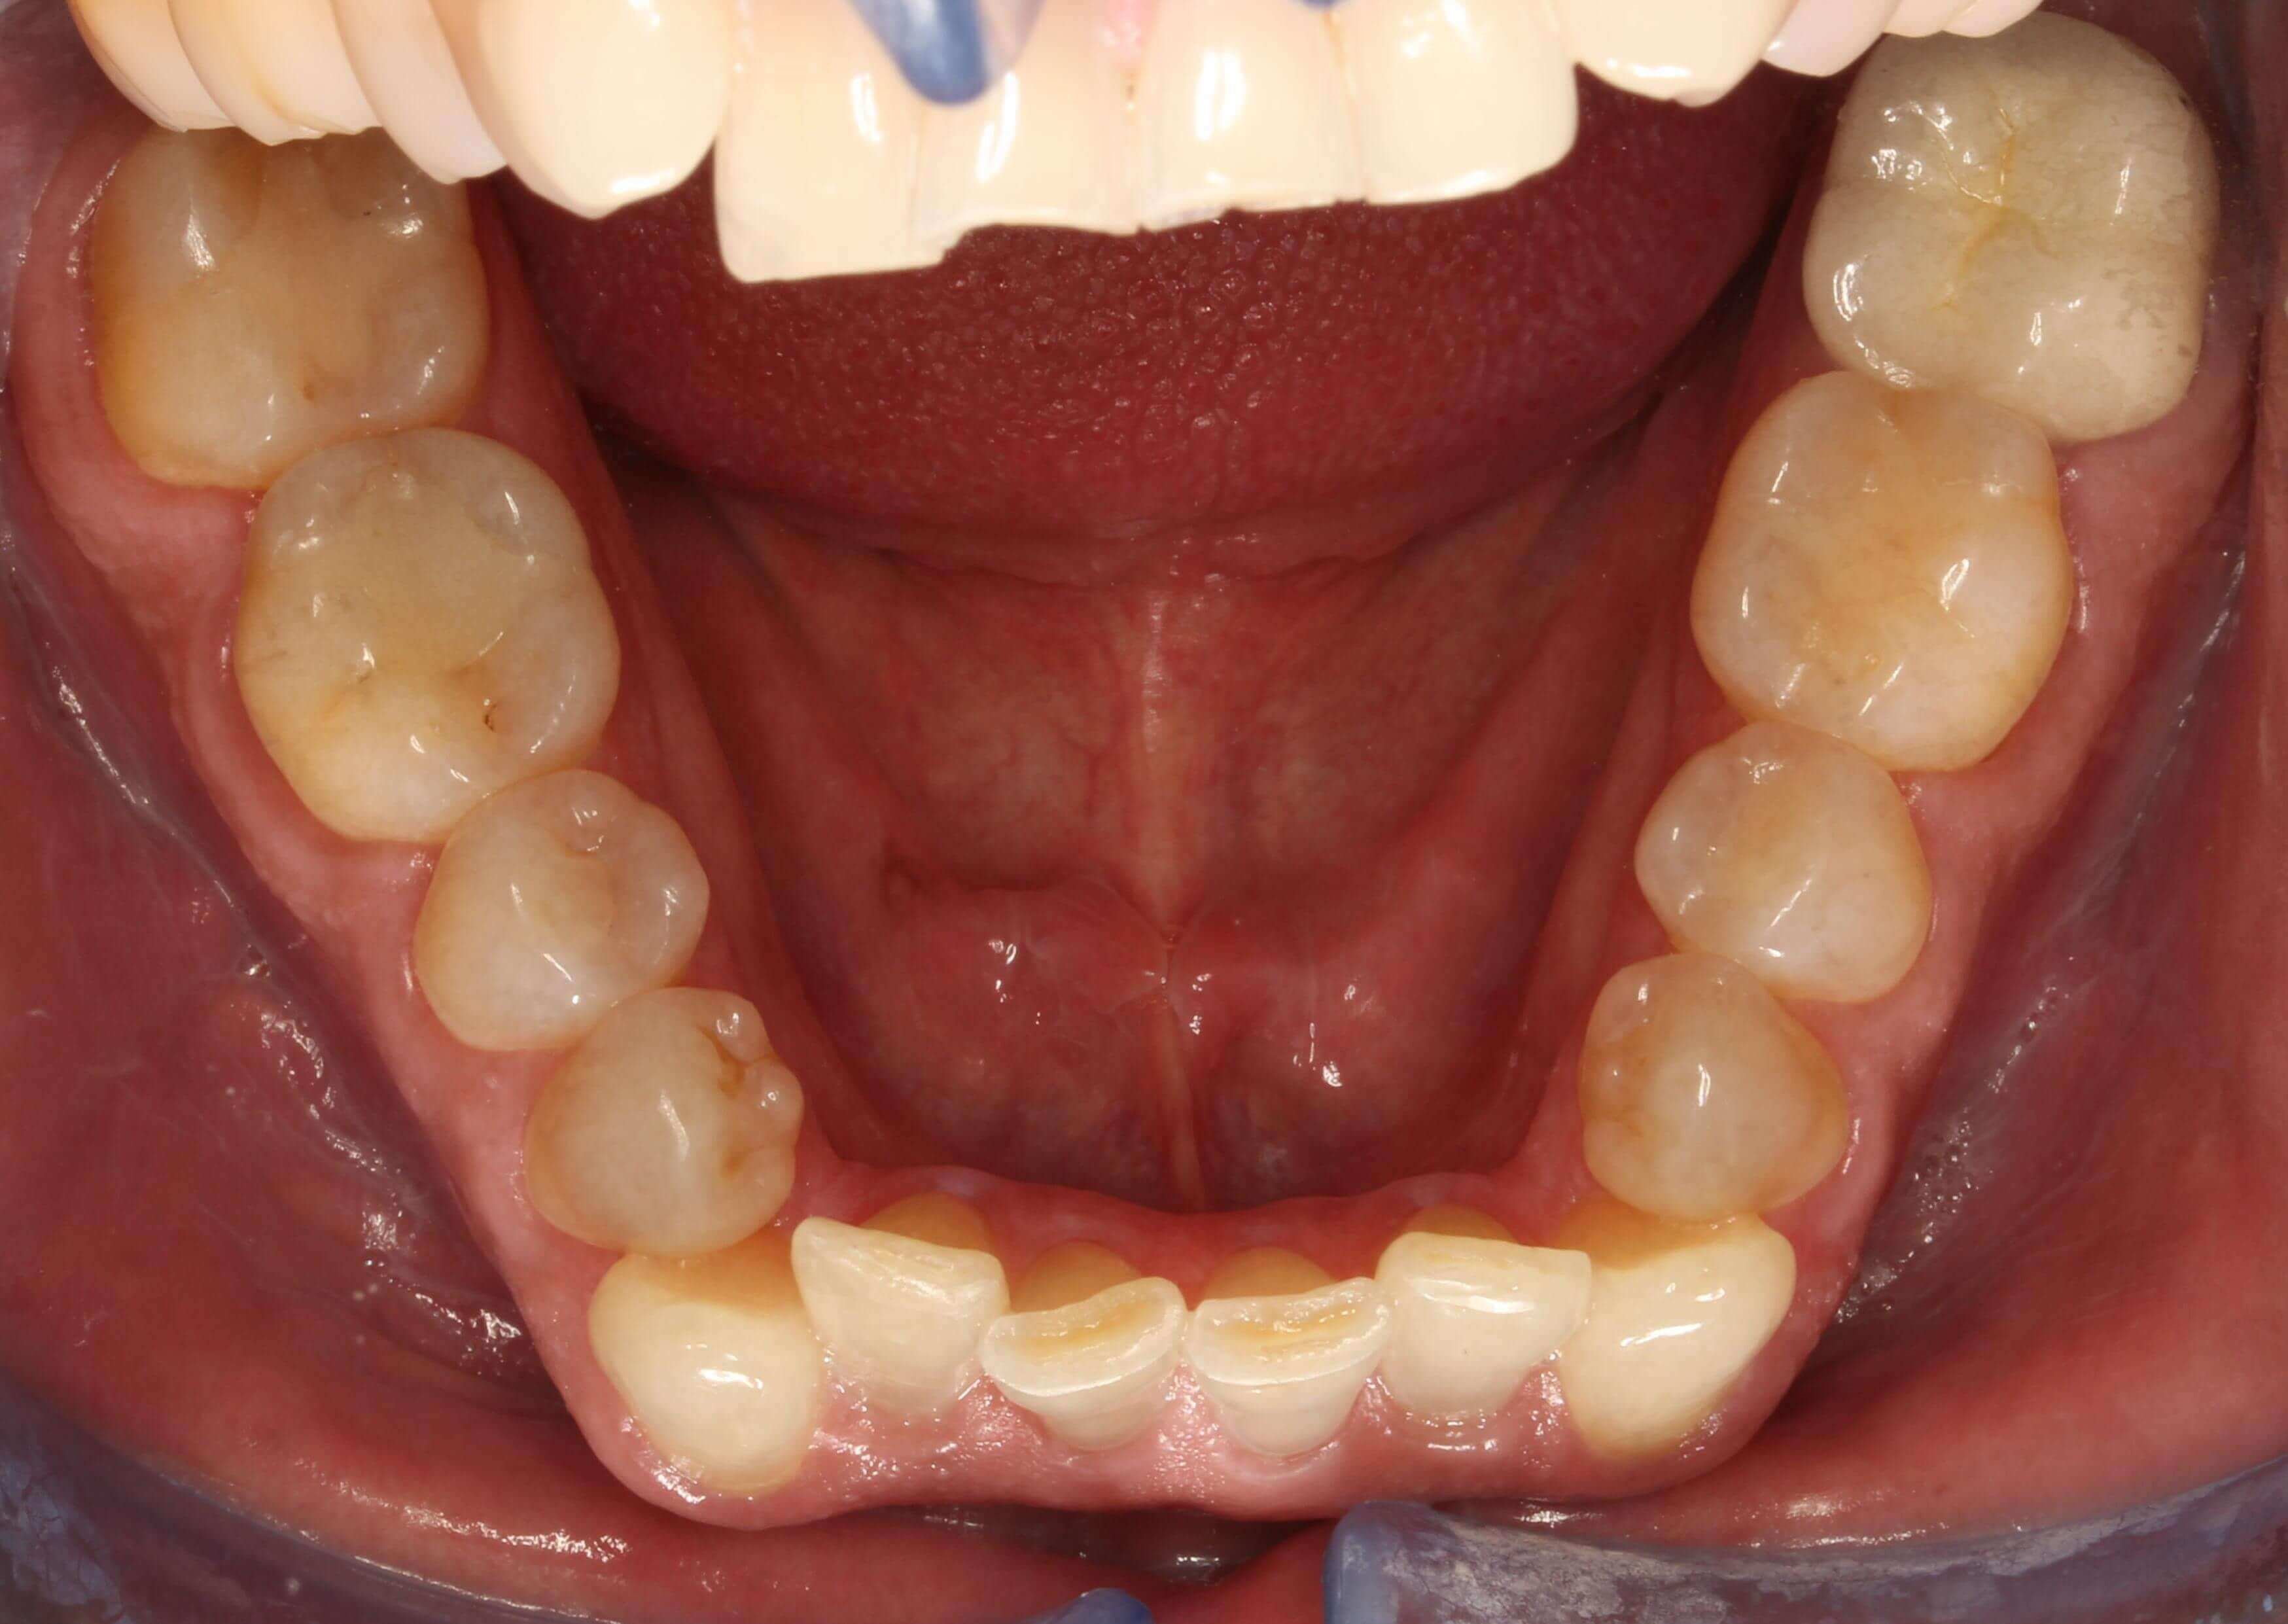 Lower Occlusal View Before